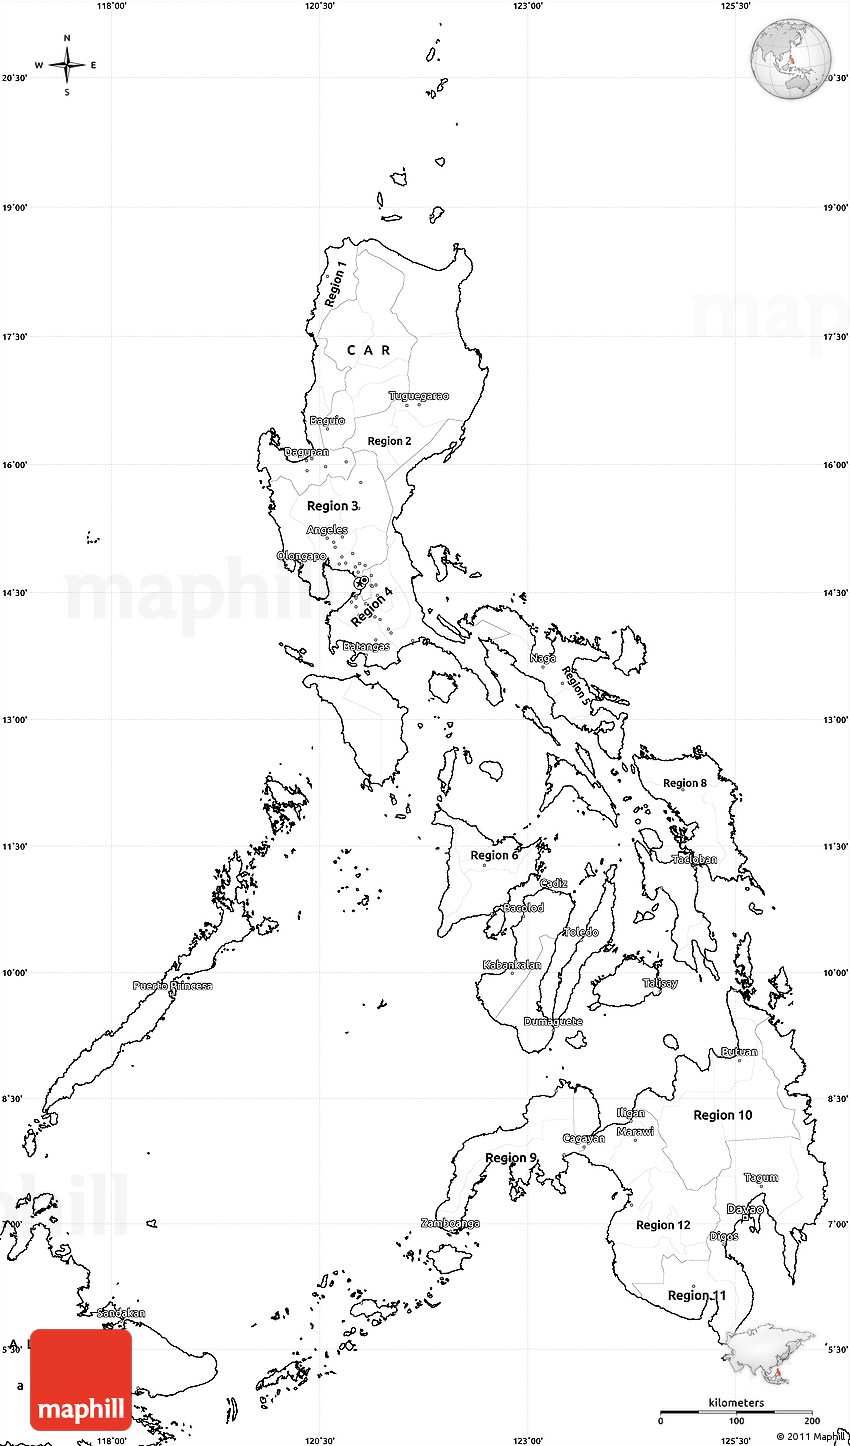 Philippines map regons clipart black and white banner download Philippines Black and White – Fashion dresses banner download